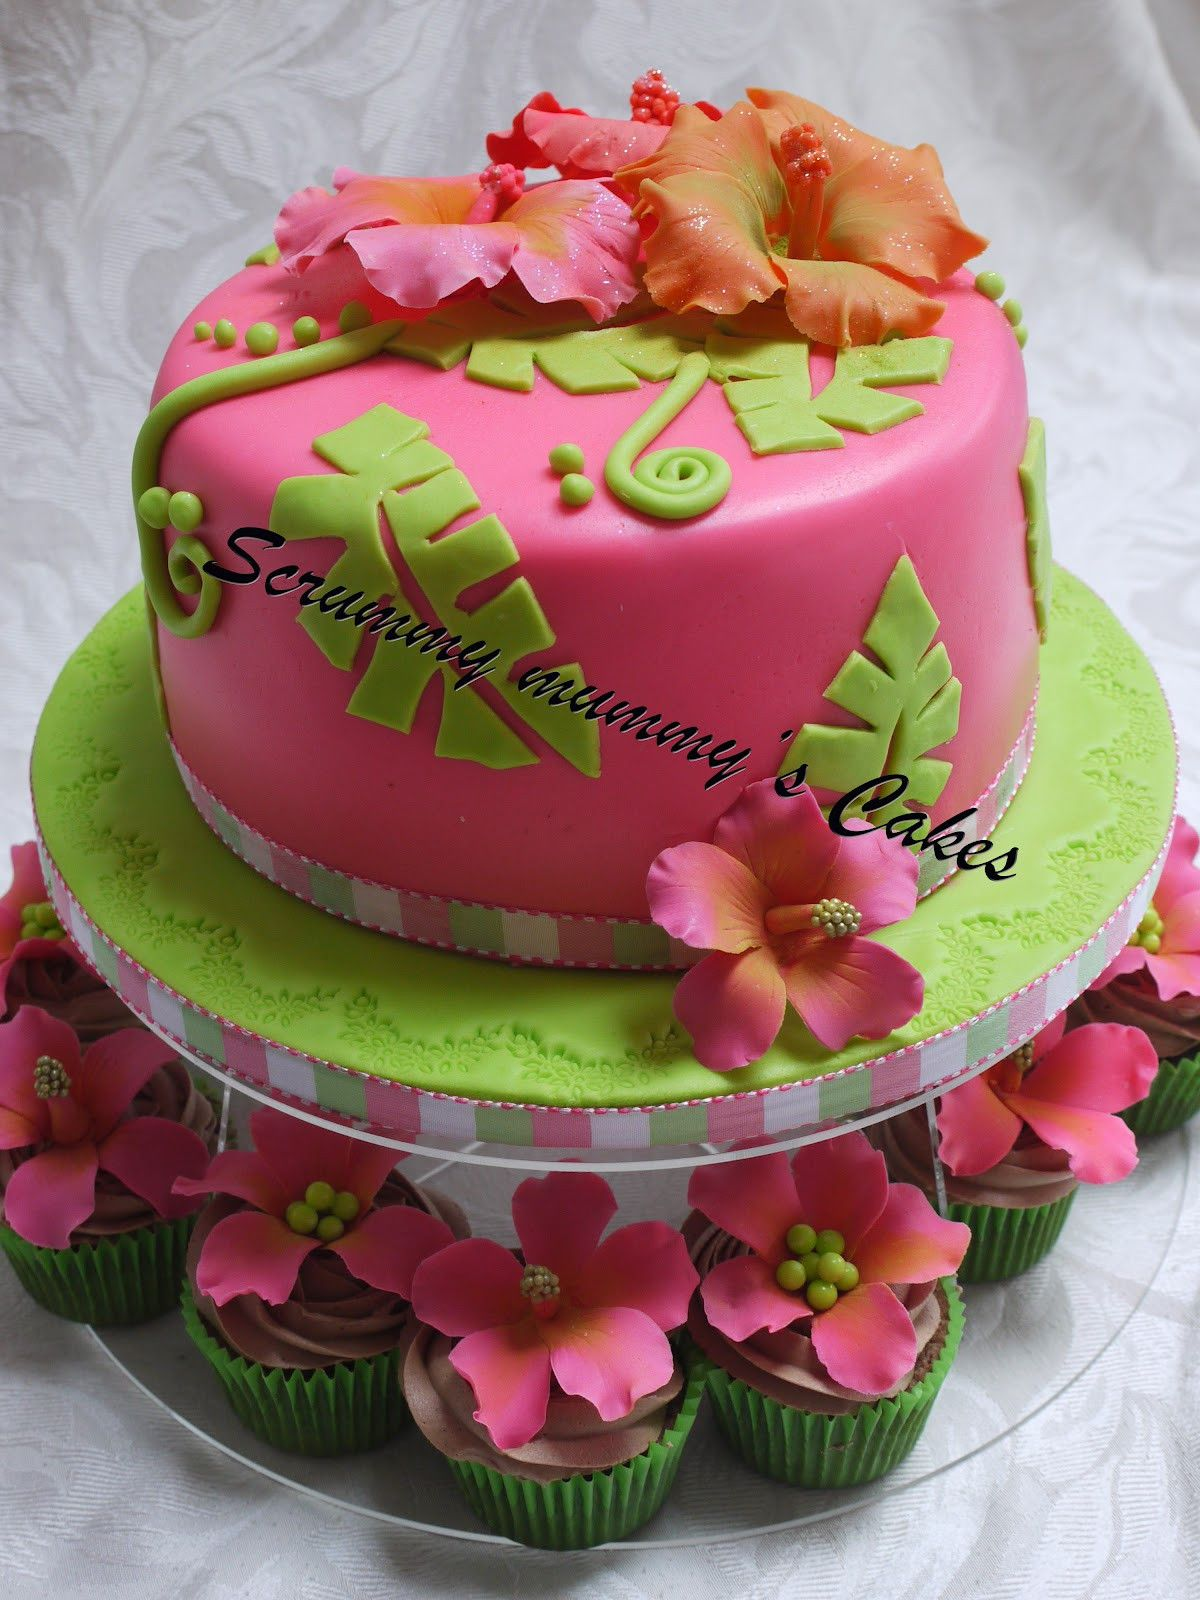 hibiscus birthday cake and cupcakes.20 Of the Best Ideas